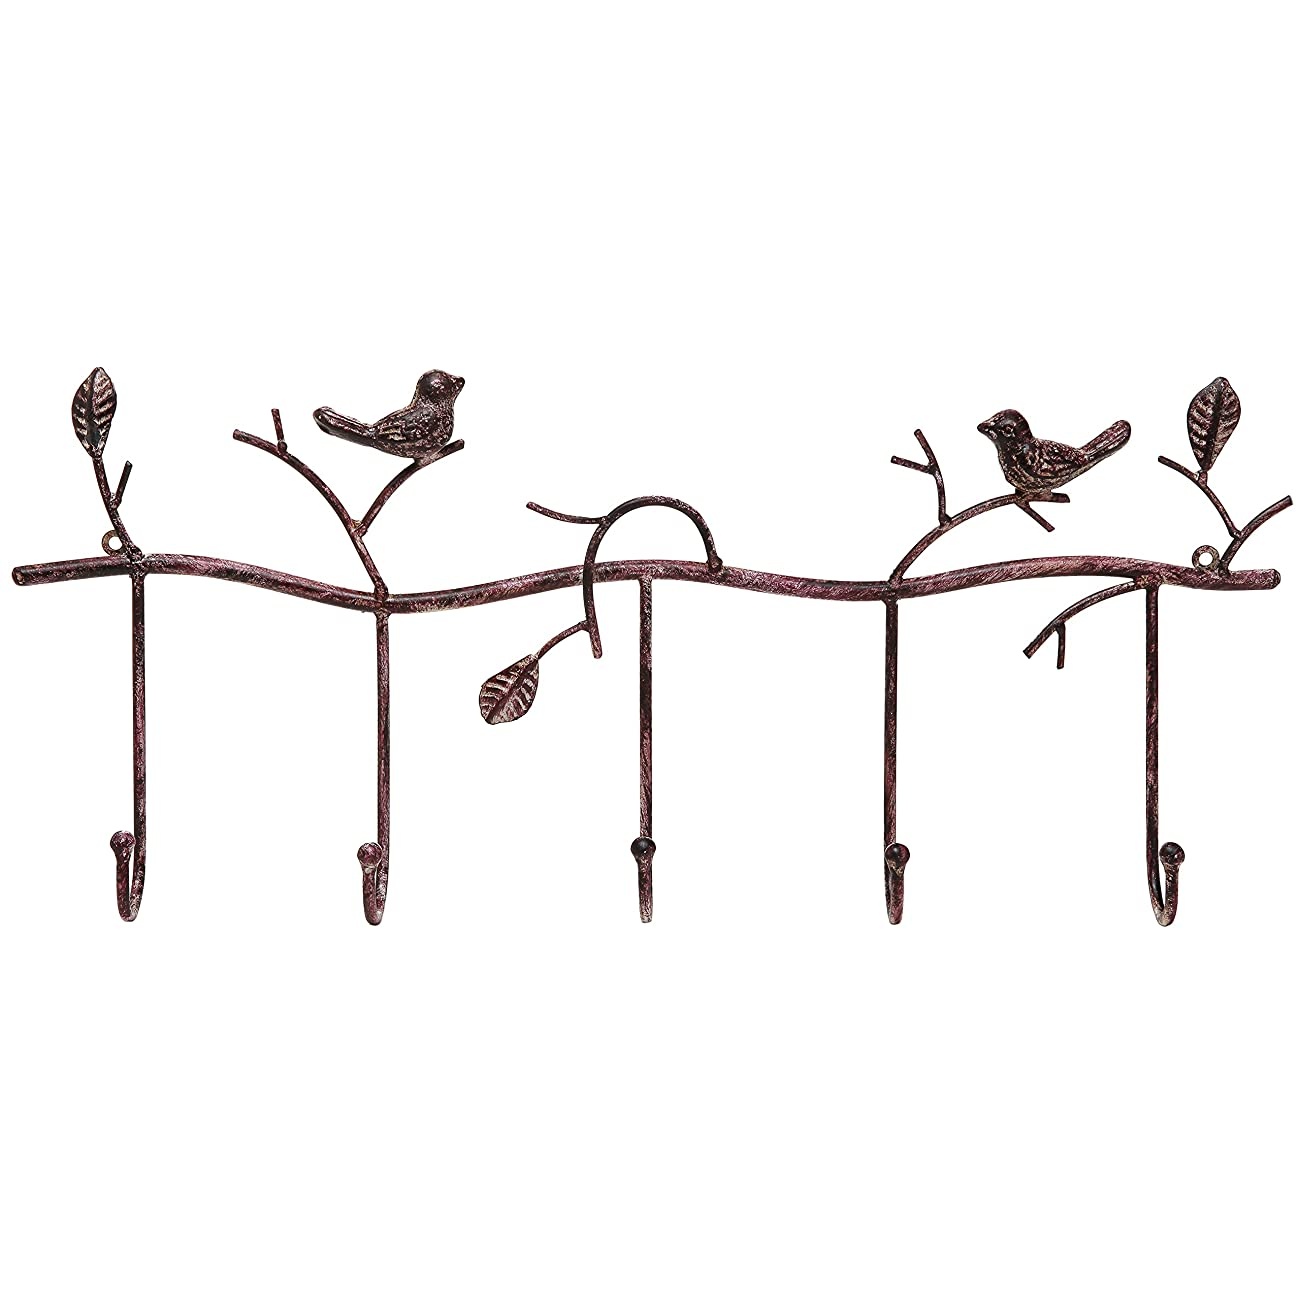 Decorative Rustic Tree Branch & Birds Wall Mounted Metal 5 Coat Hook Clothing / Towel Hanger Storage Rack 1